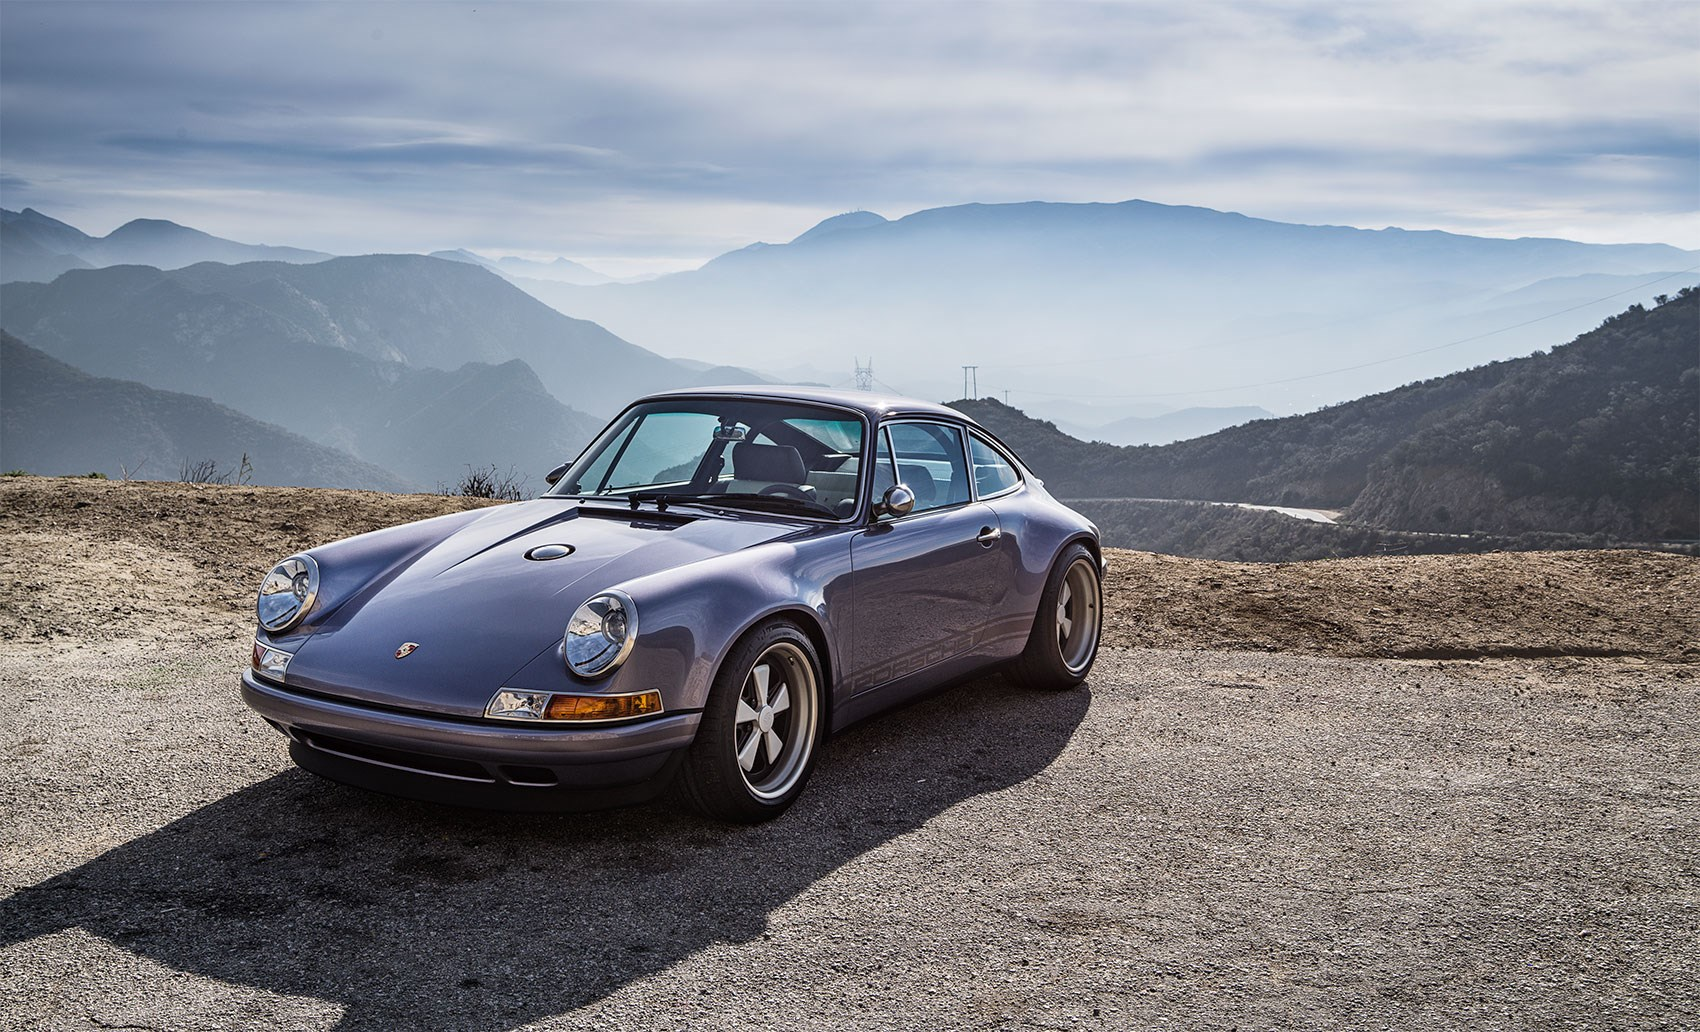 Inside Singer Vehicle Design The Porsche 911 Experts Car Magazine La Detailed Auto Topics Tips On Automotive Electrical Testing 964 Is Just Spectacular